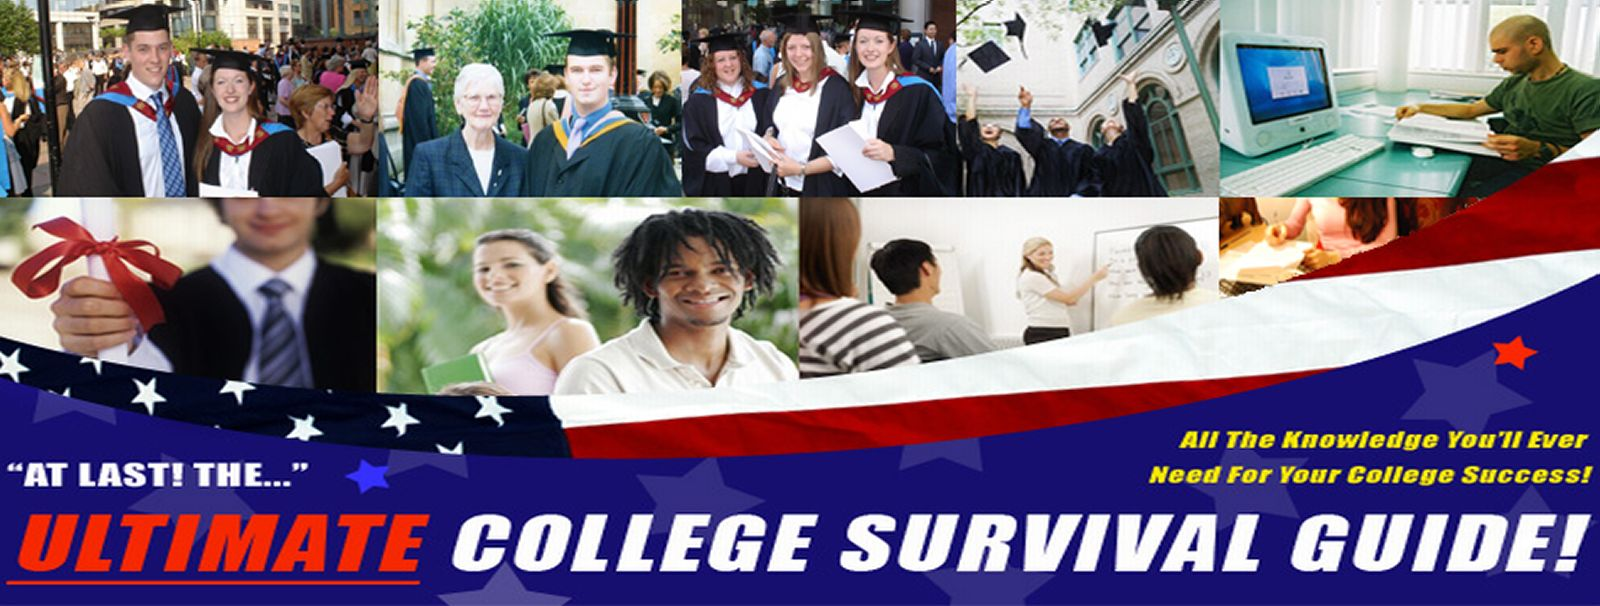 Frequently Asked Questions - Ultimate College Survival Guide